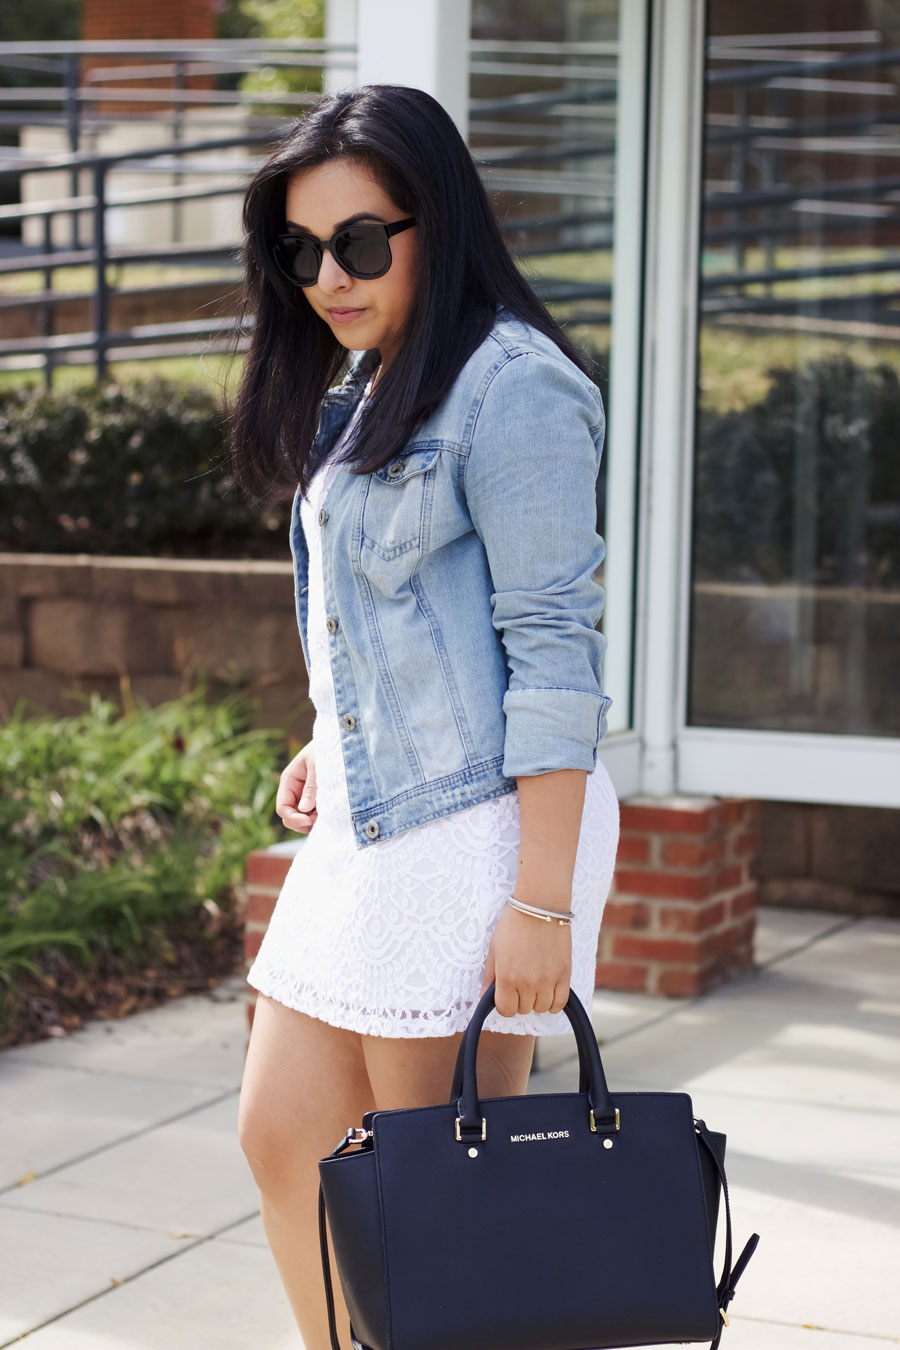 white lace dress jacket outffit